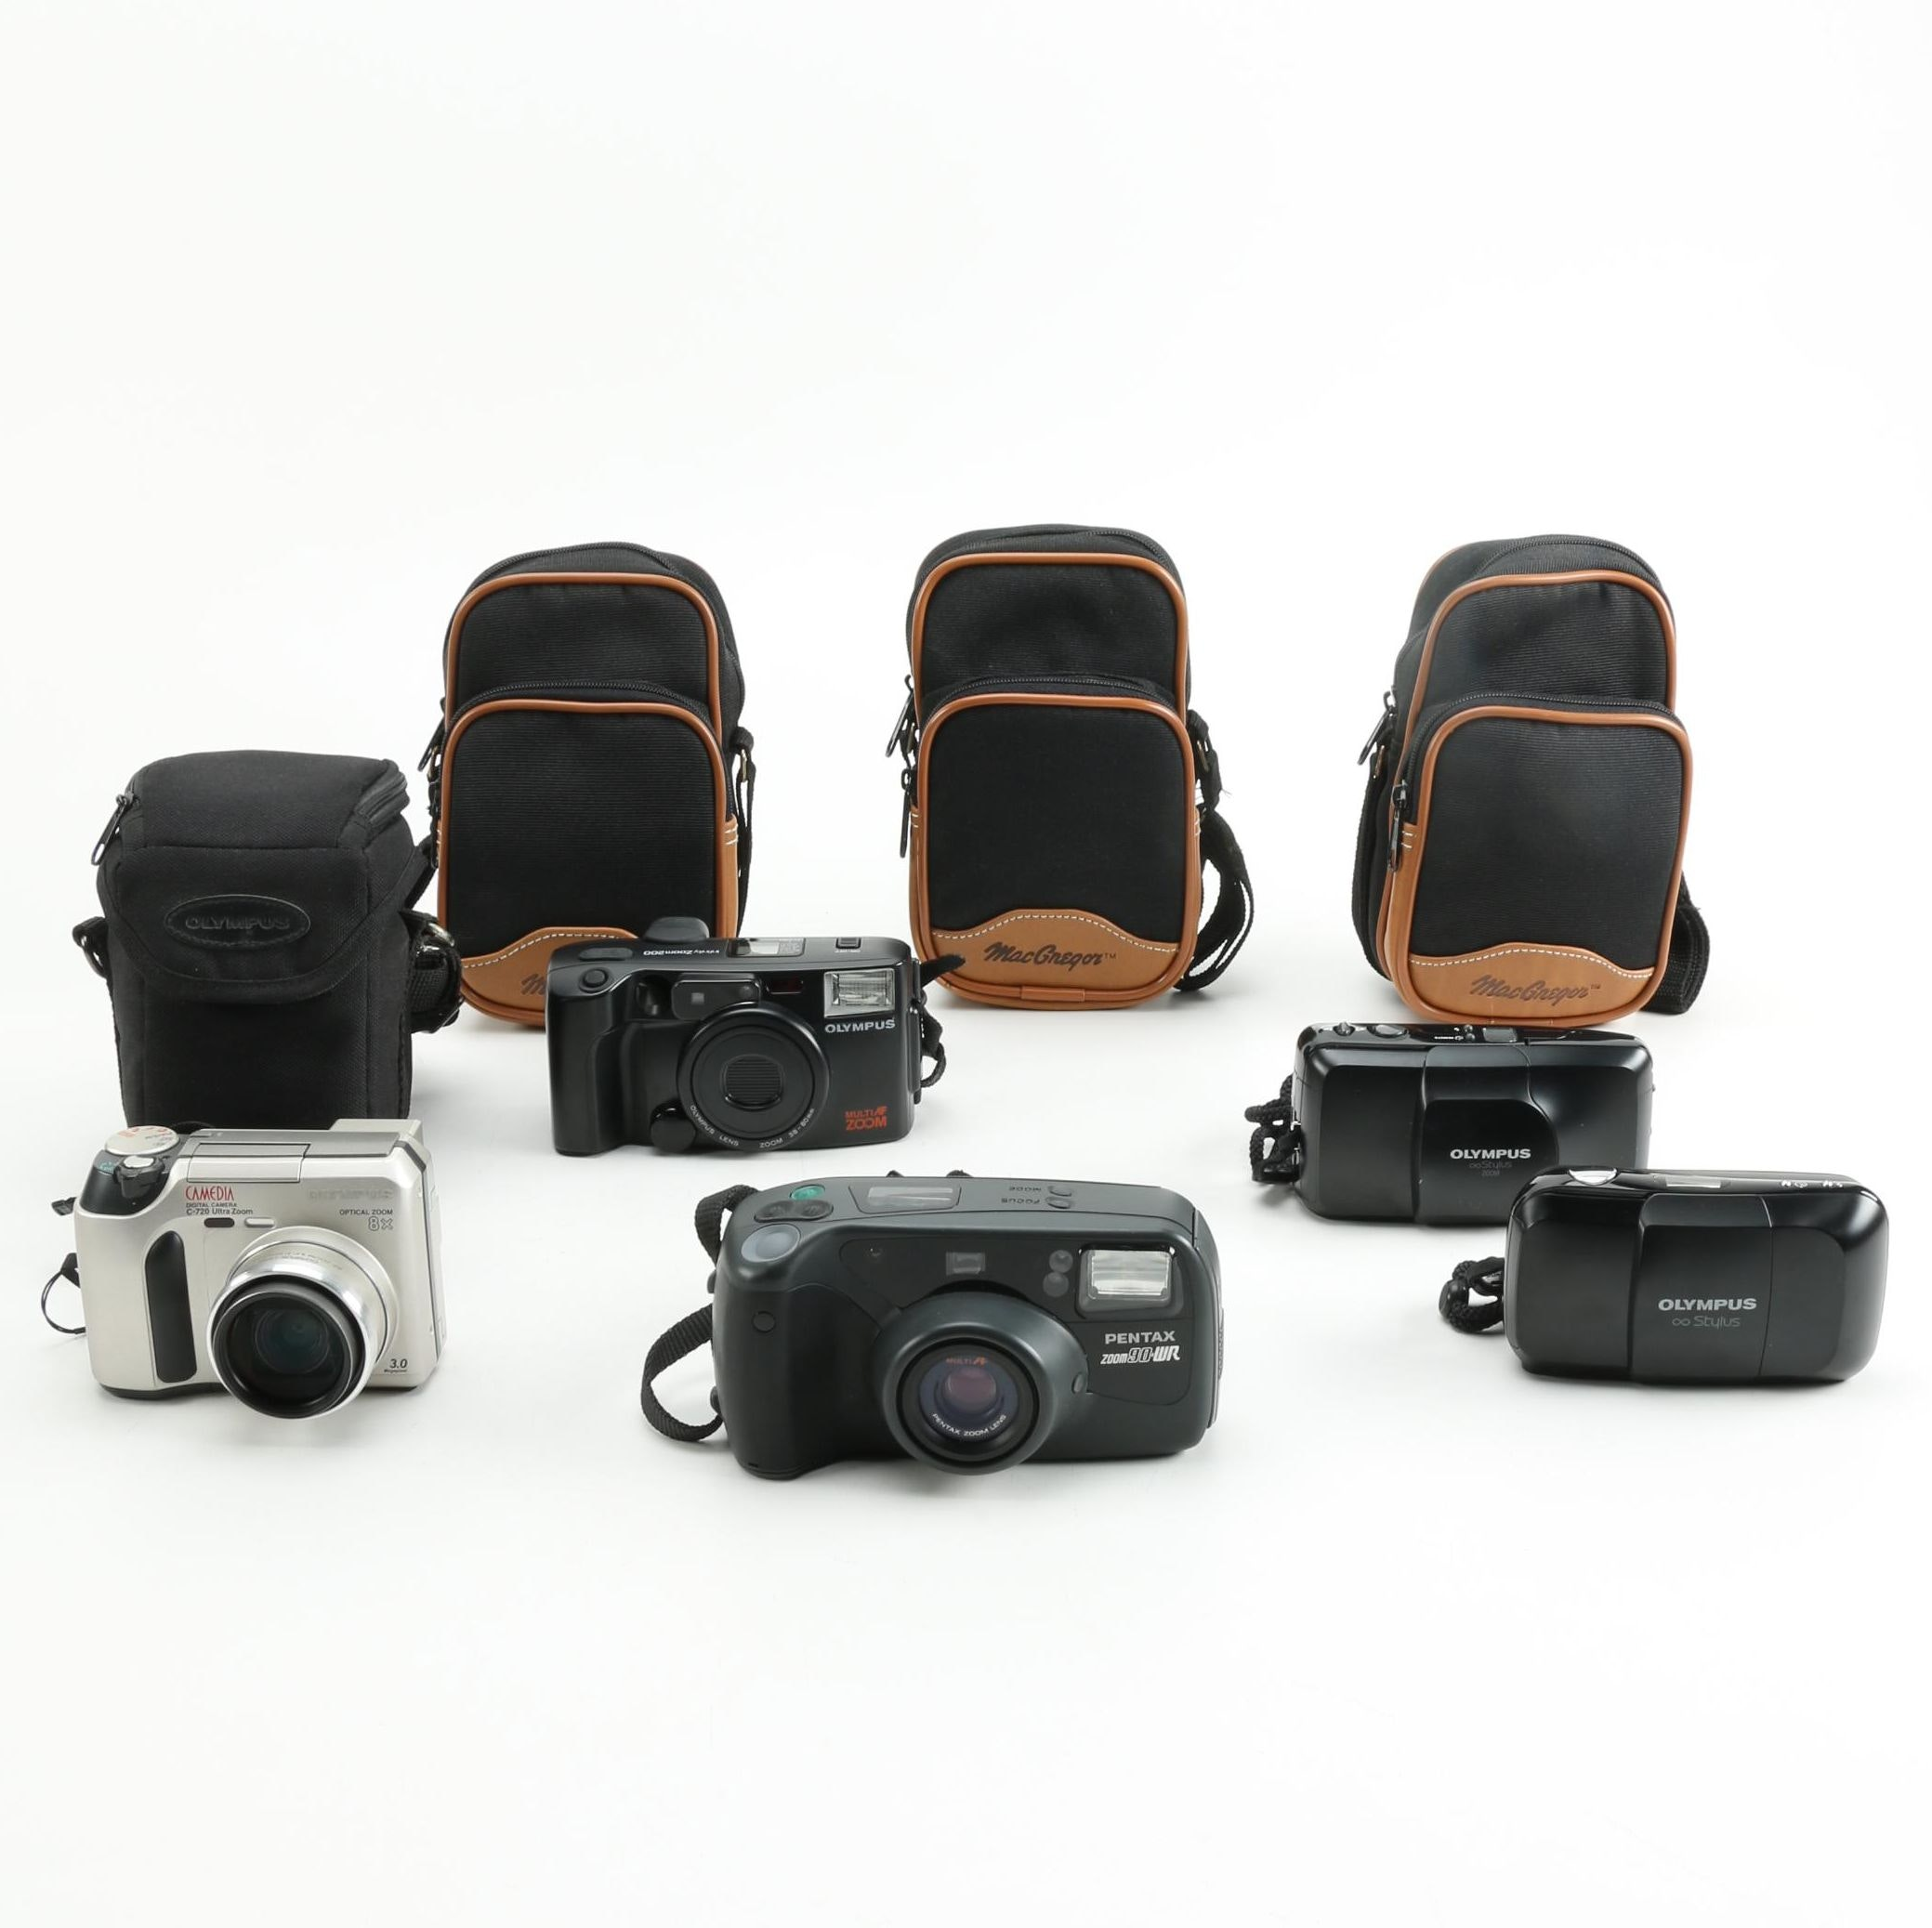 Olympus Cameras and Accessories